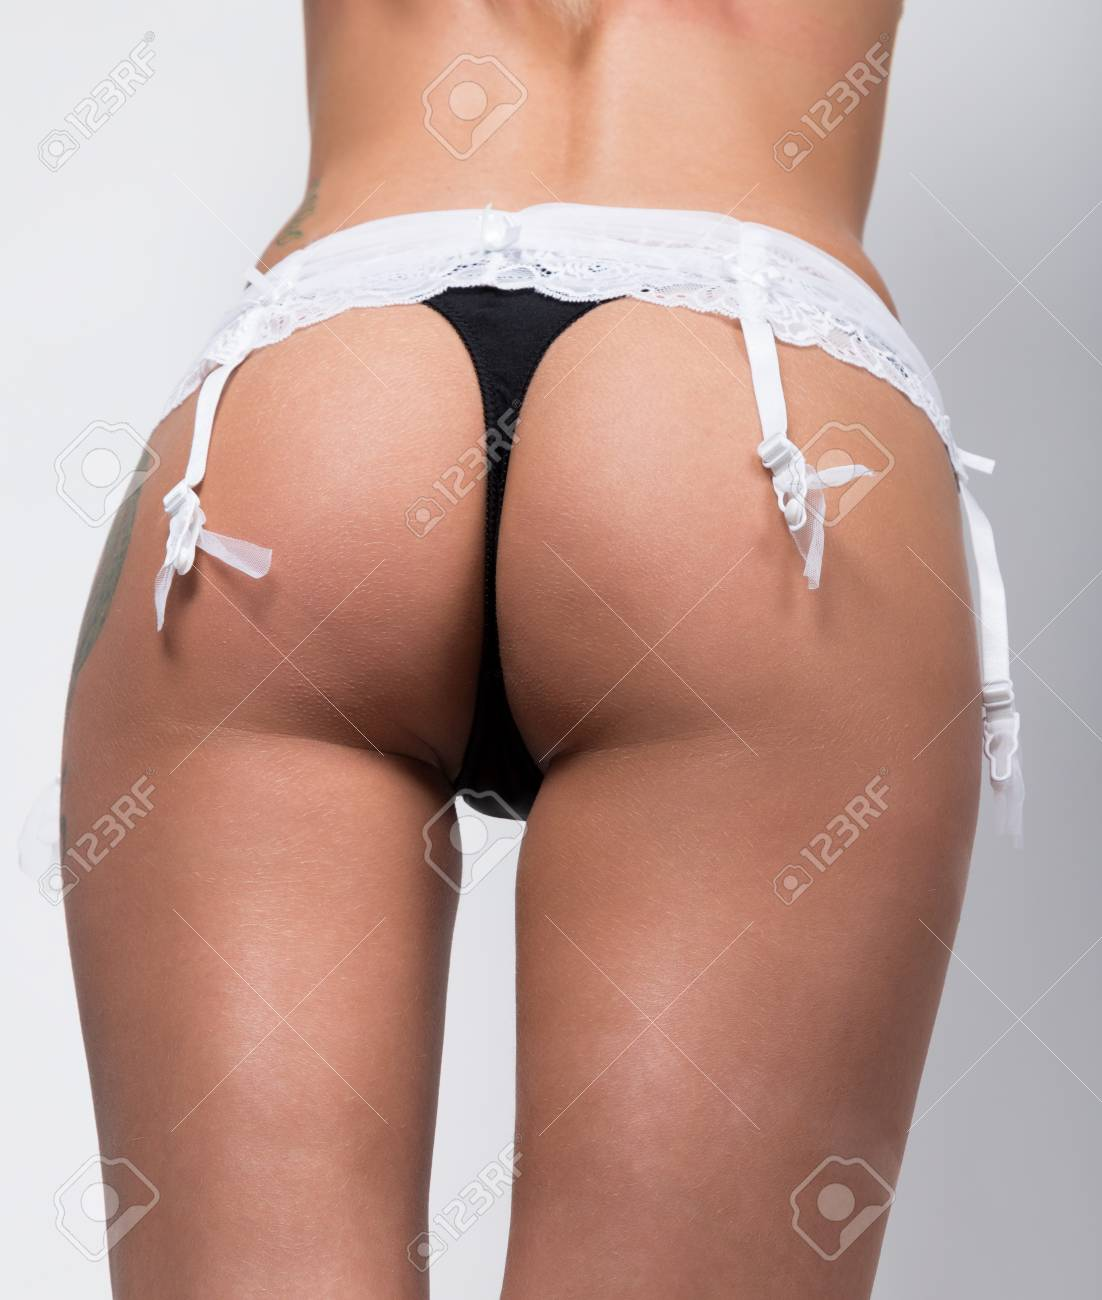 Nice smotth asses